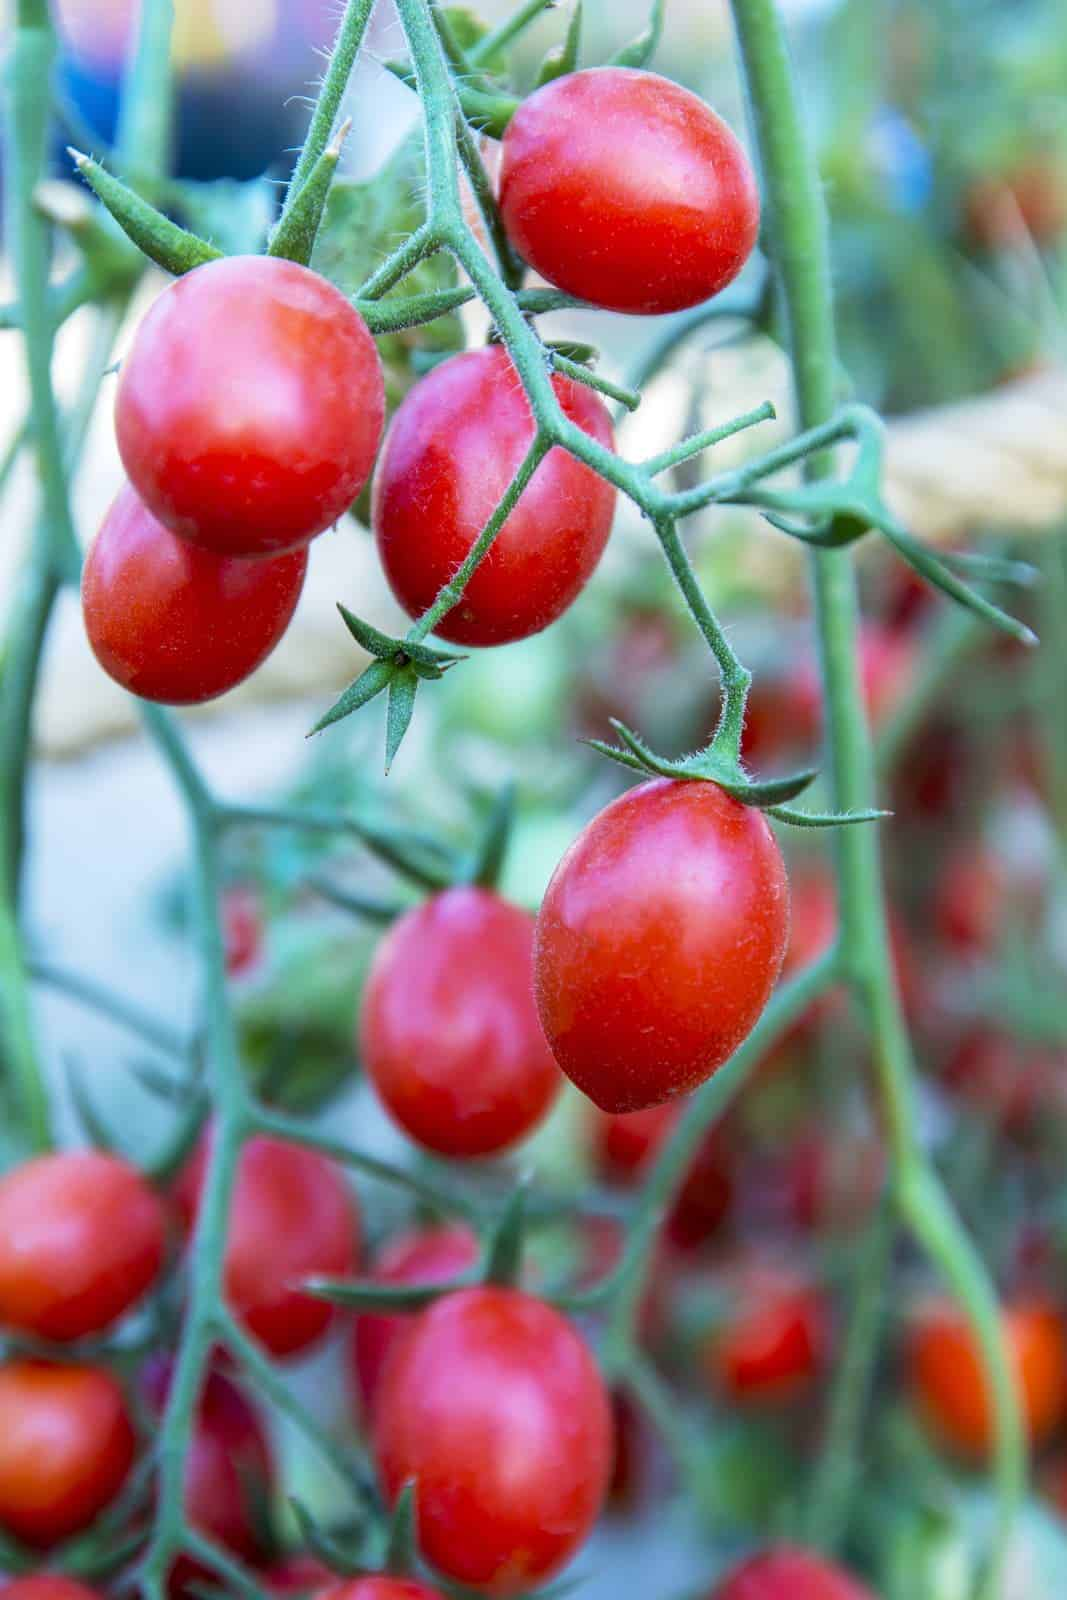 Growing Amish Paste tomatoes